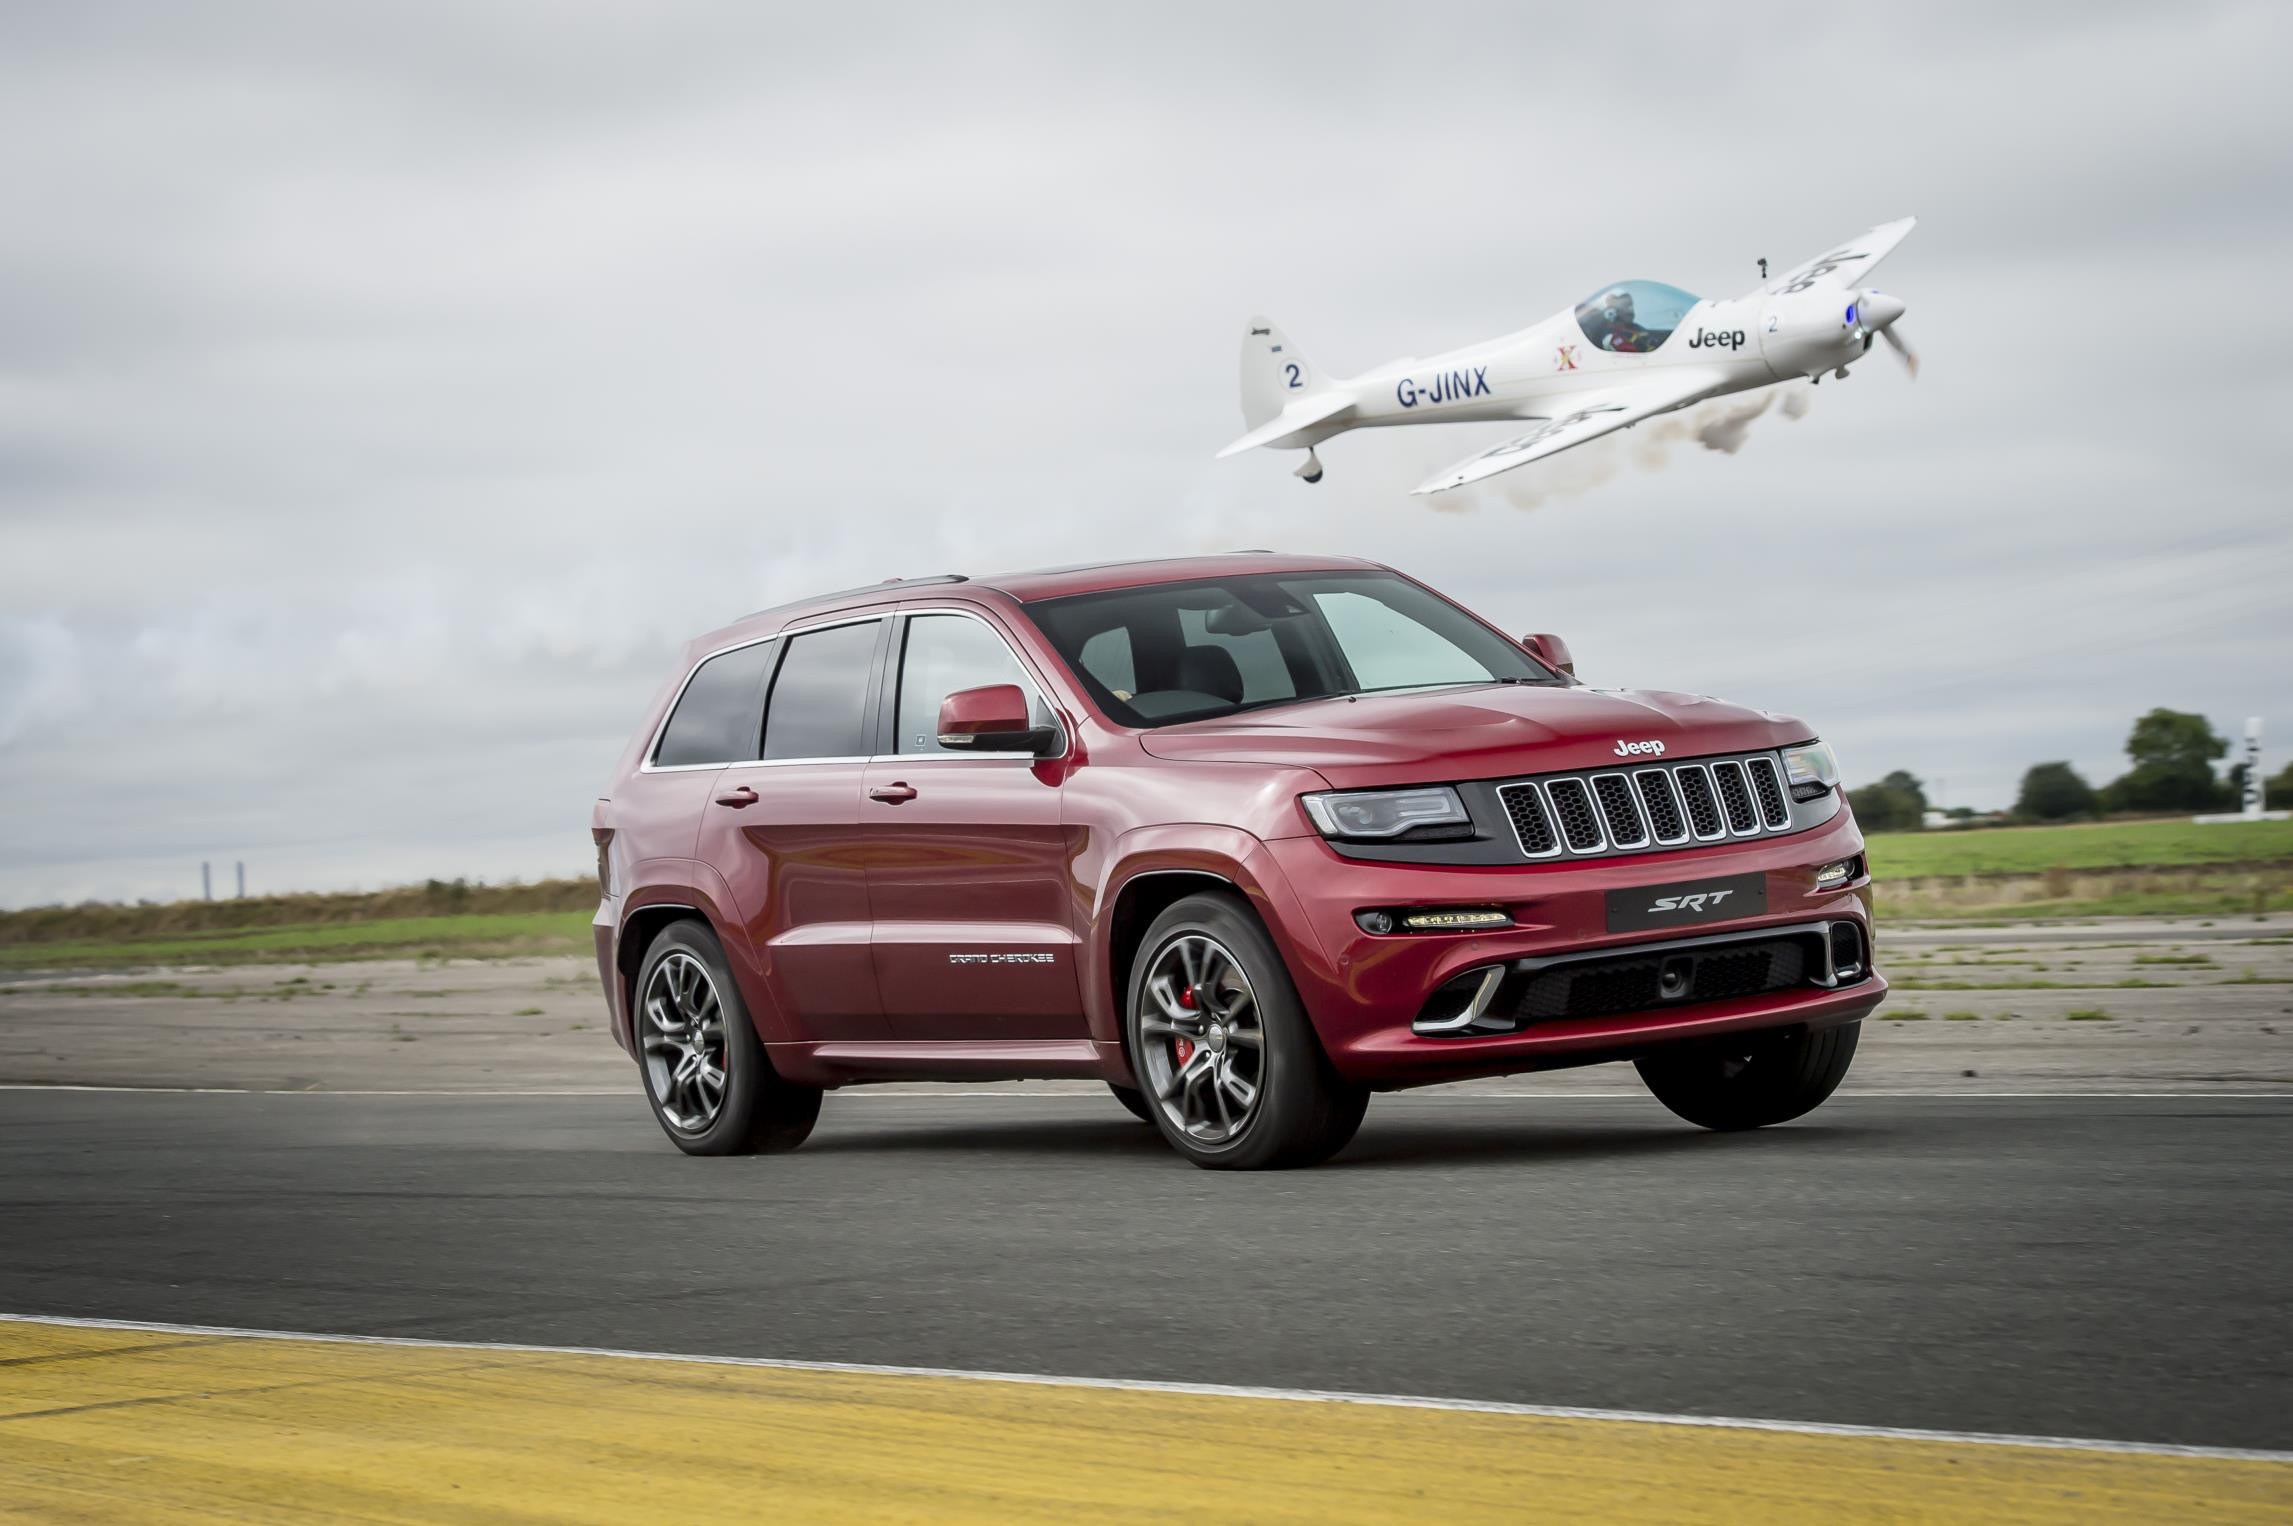 Red Jeep Grand Cherokee racing a single engined plane